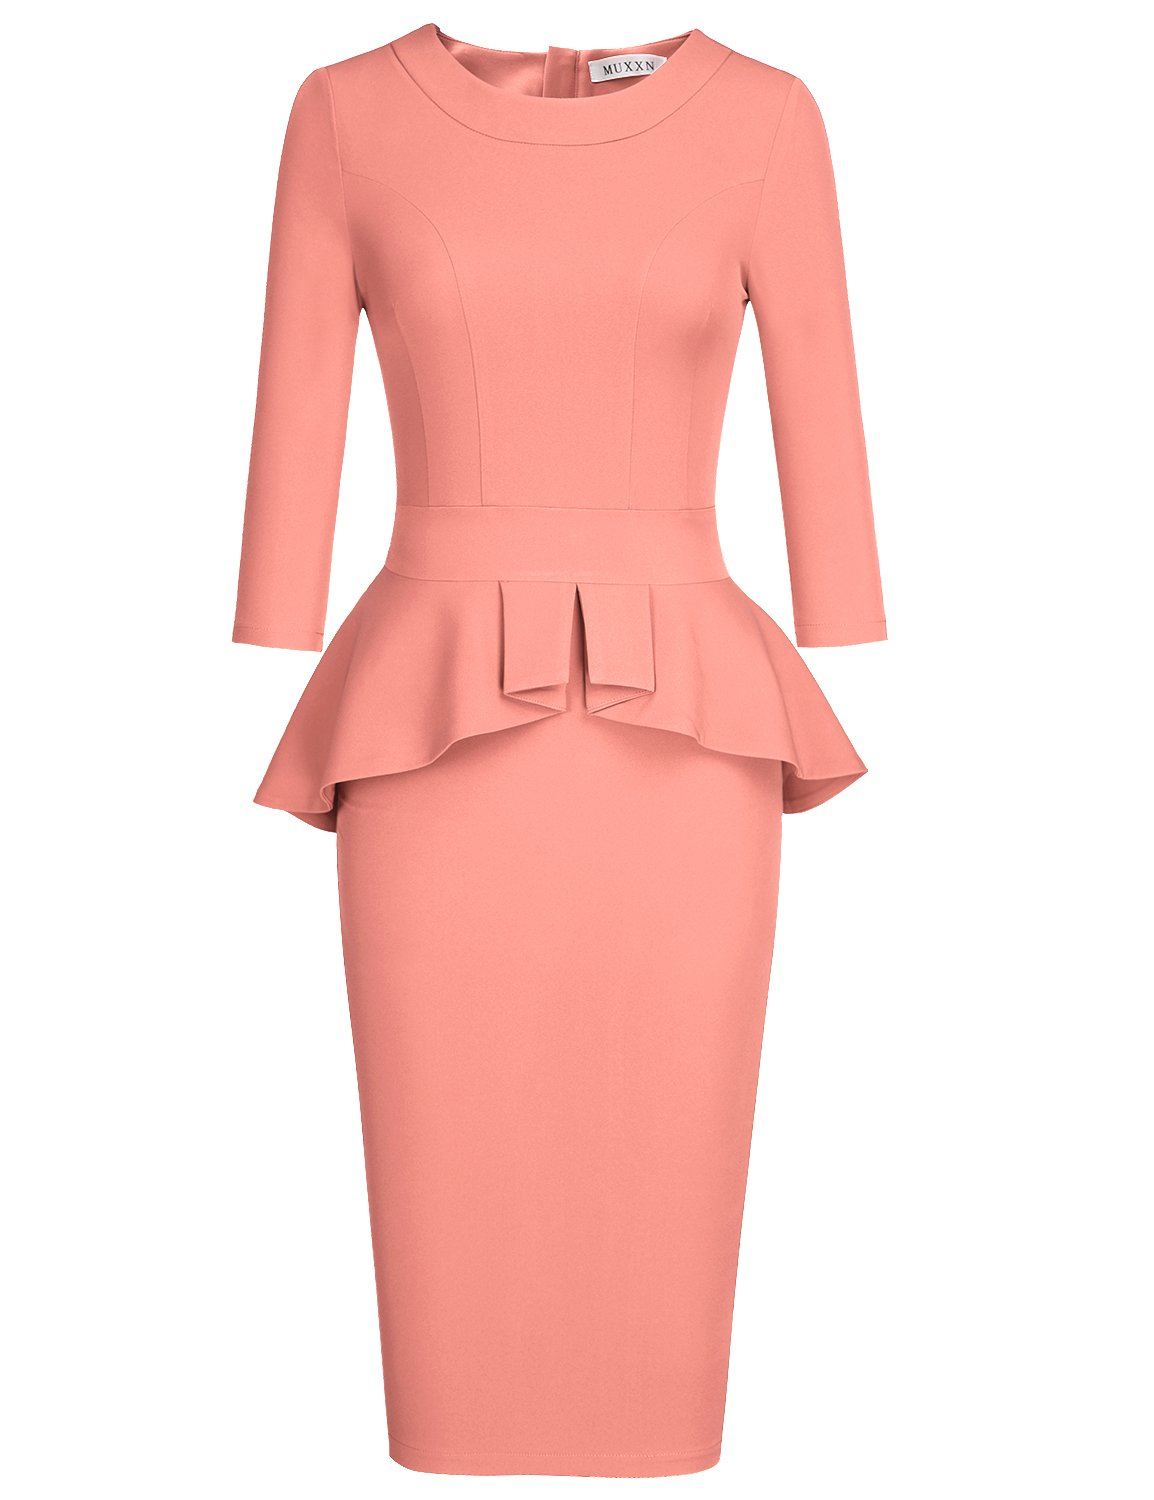 MUXXN Women's Round Neck Pleated Peplum Bodycon Mini Work Pencil Dress (Peach XXL) by MUXXN